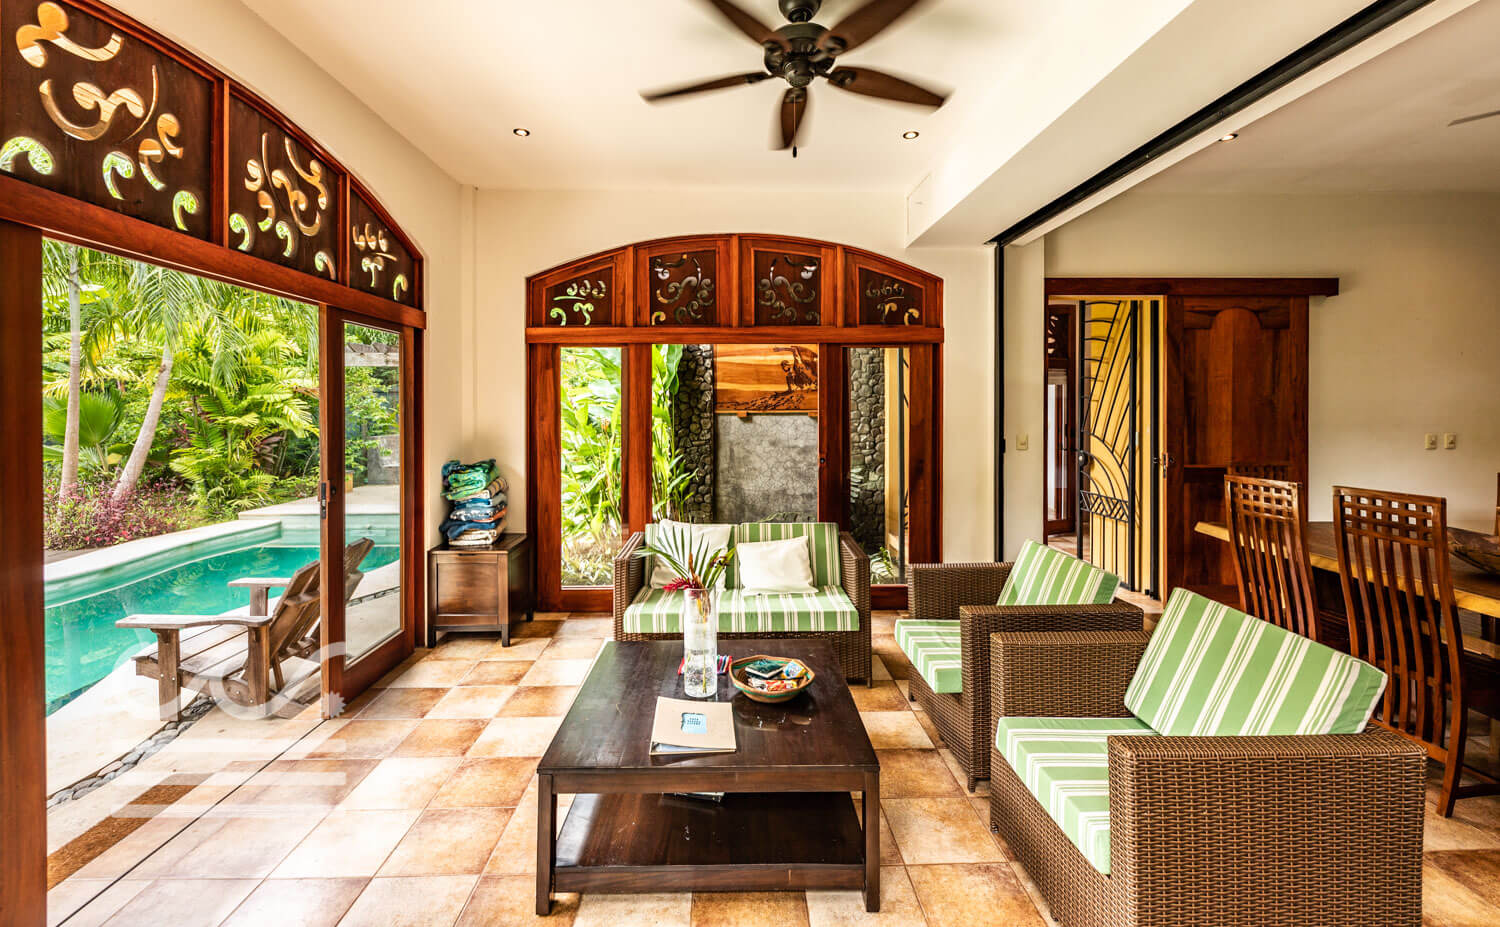 Endless-Summer-Wanderlust-Realty-Real-Estate-Rentals-Nosara-Costa-Rica-11.jpg